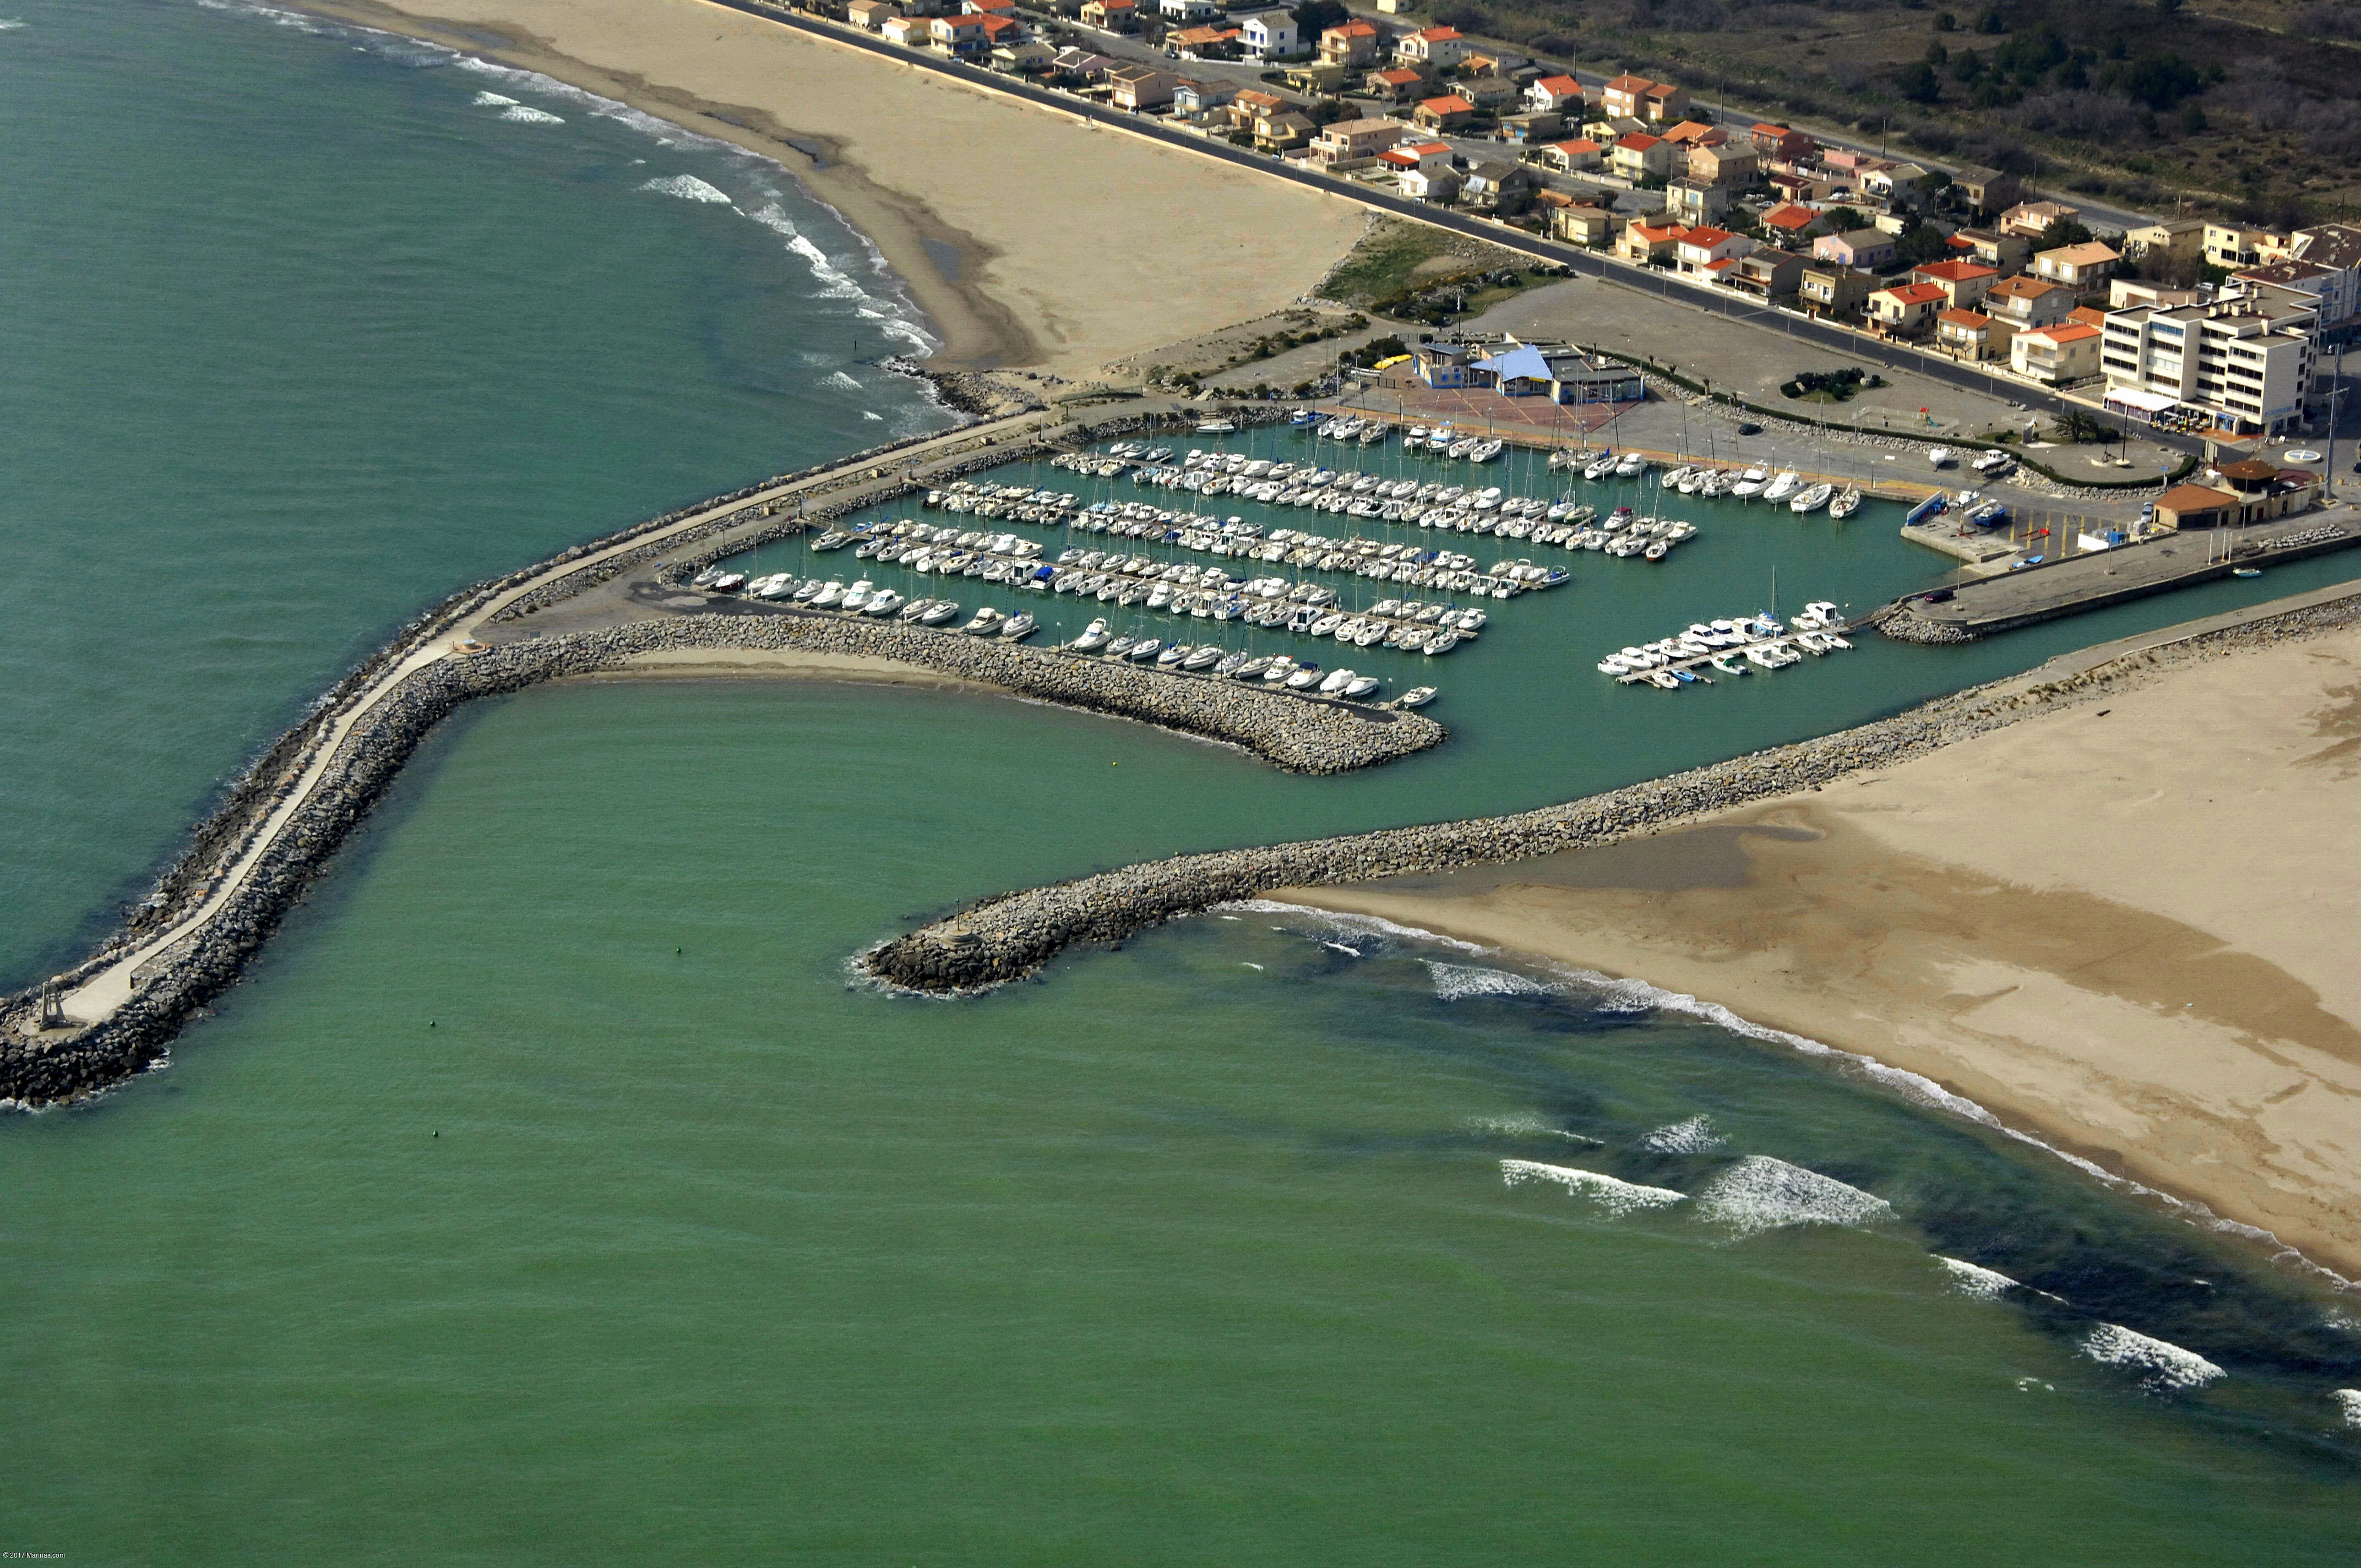 Narbonne plage marina in narbonne plage languedoc roussillon france marina reviews phone - V and b narbonne ...